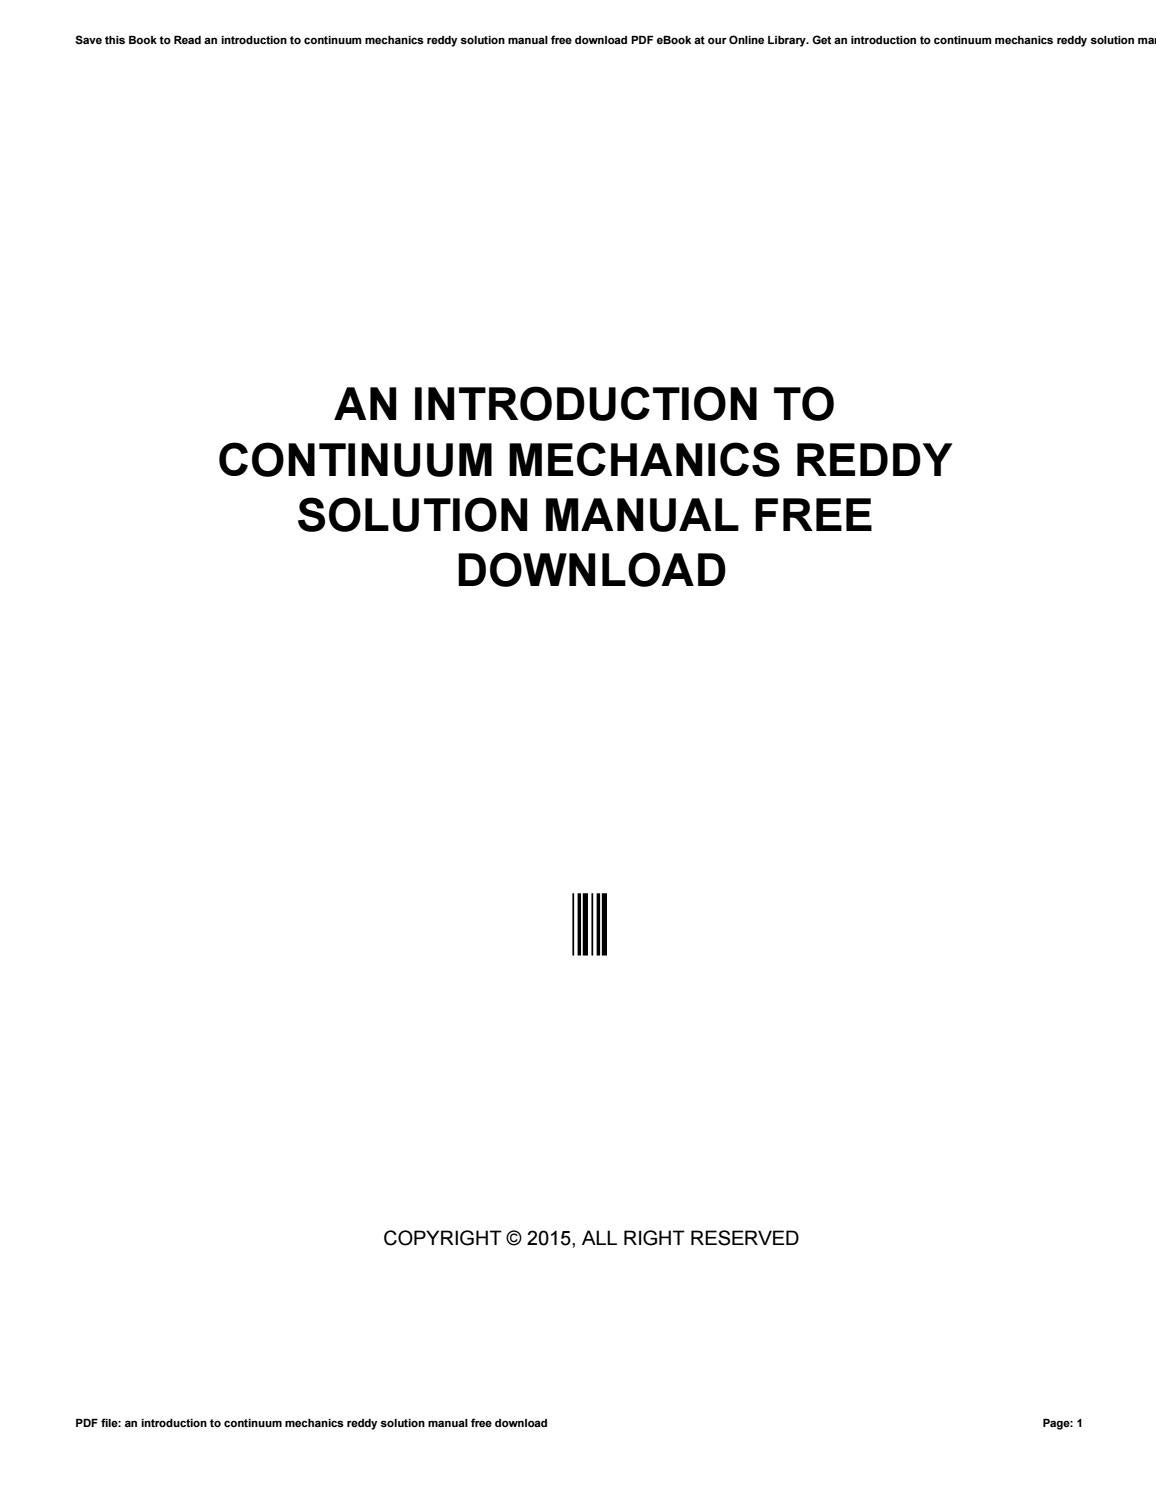 An introduction to continuum mechanics reddy solution manual free download  by v723 - issuu